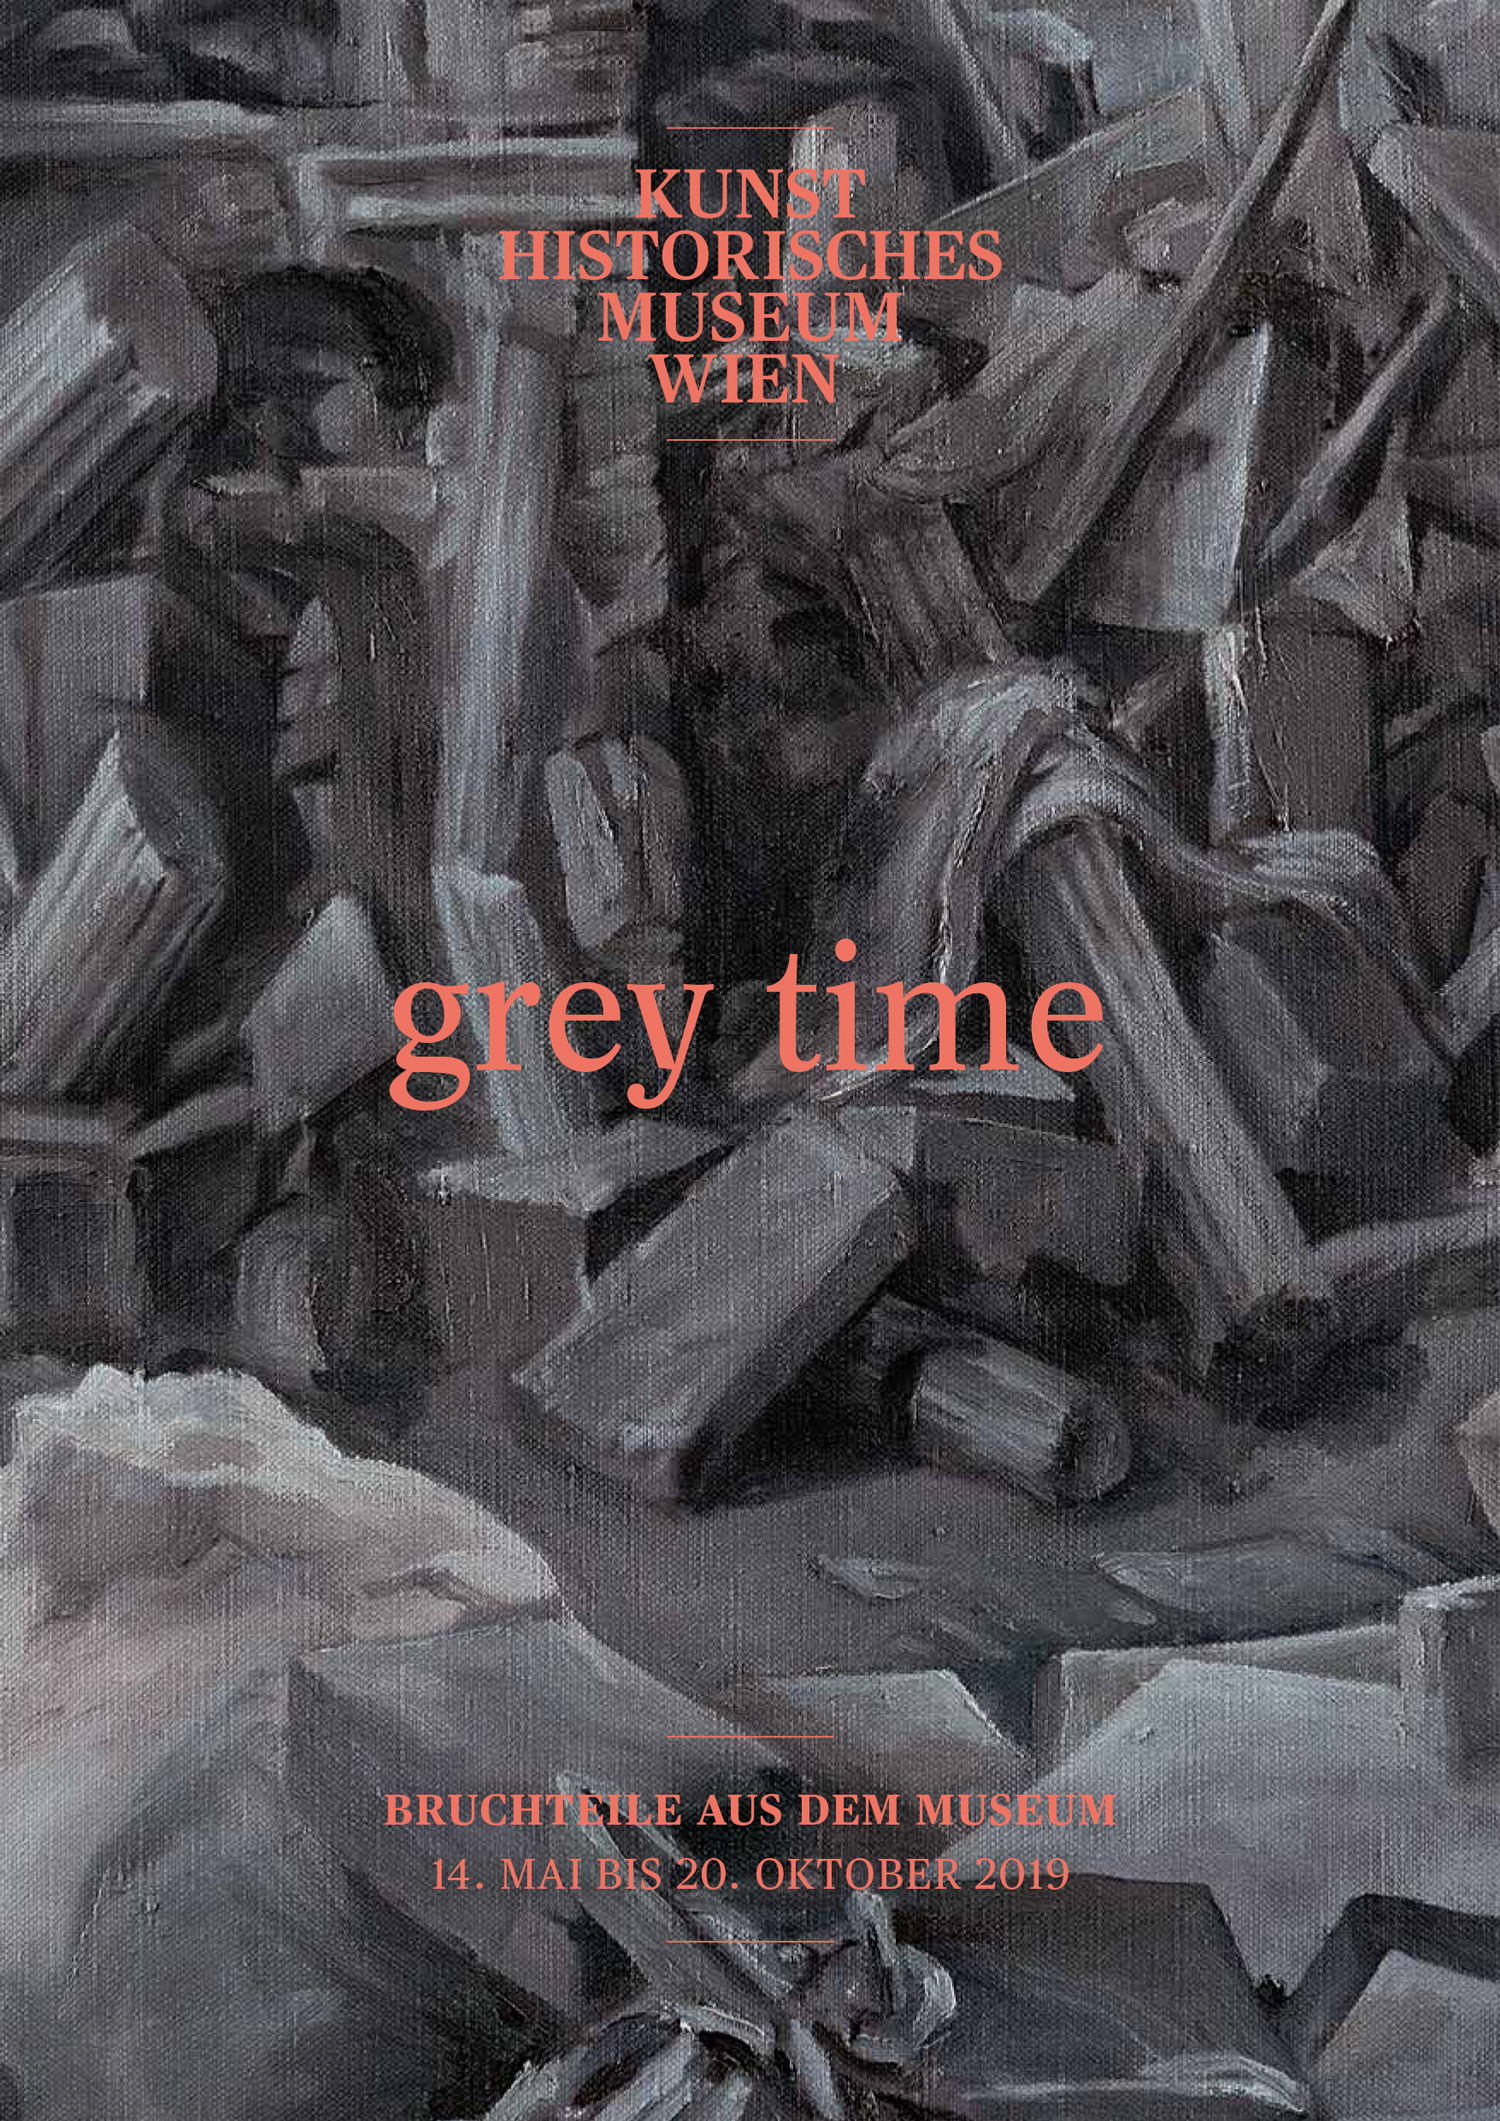 "Opening on the 13th of May at 19:00. From the 14th of May to the 20th of October the exhibition ""grey time - Bruchteile aus dem Museum"" will be shown at the Kunsthistorisches Museum Vienna / Maria-Theresien-Platz, 1010."